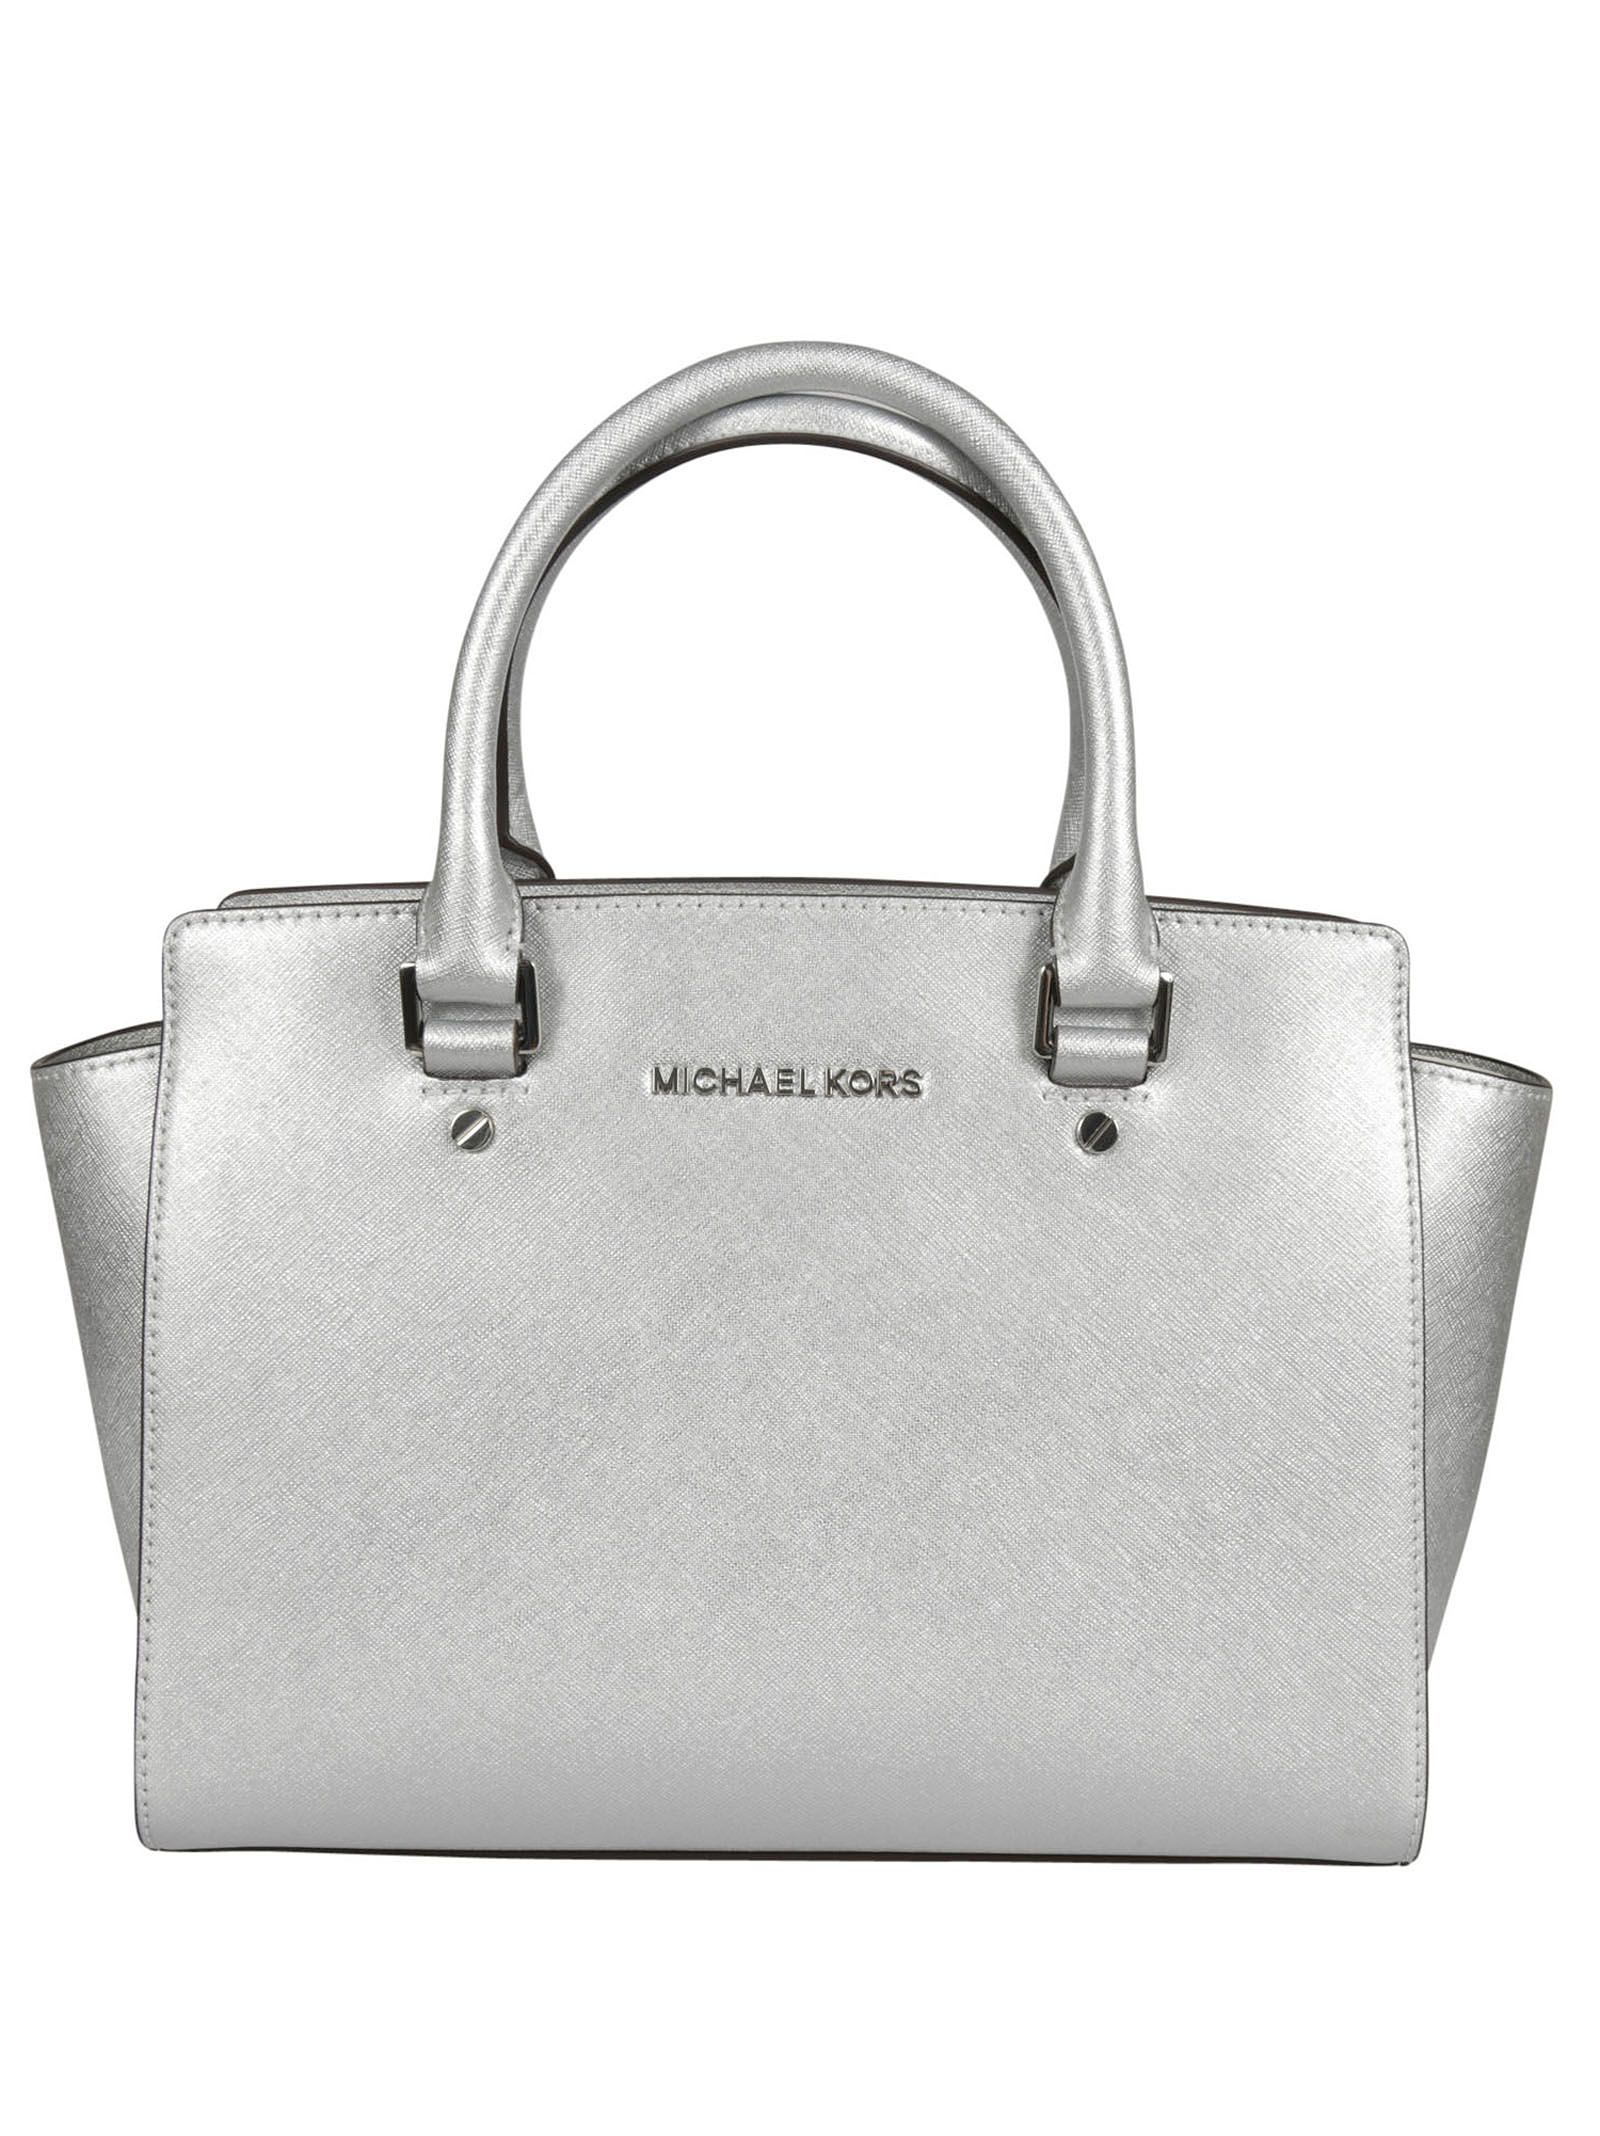 michael kors female 45900 silver metal selma medium satchel